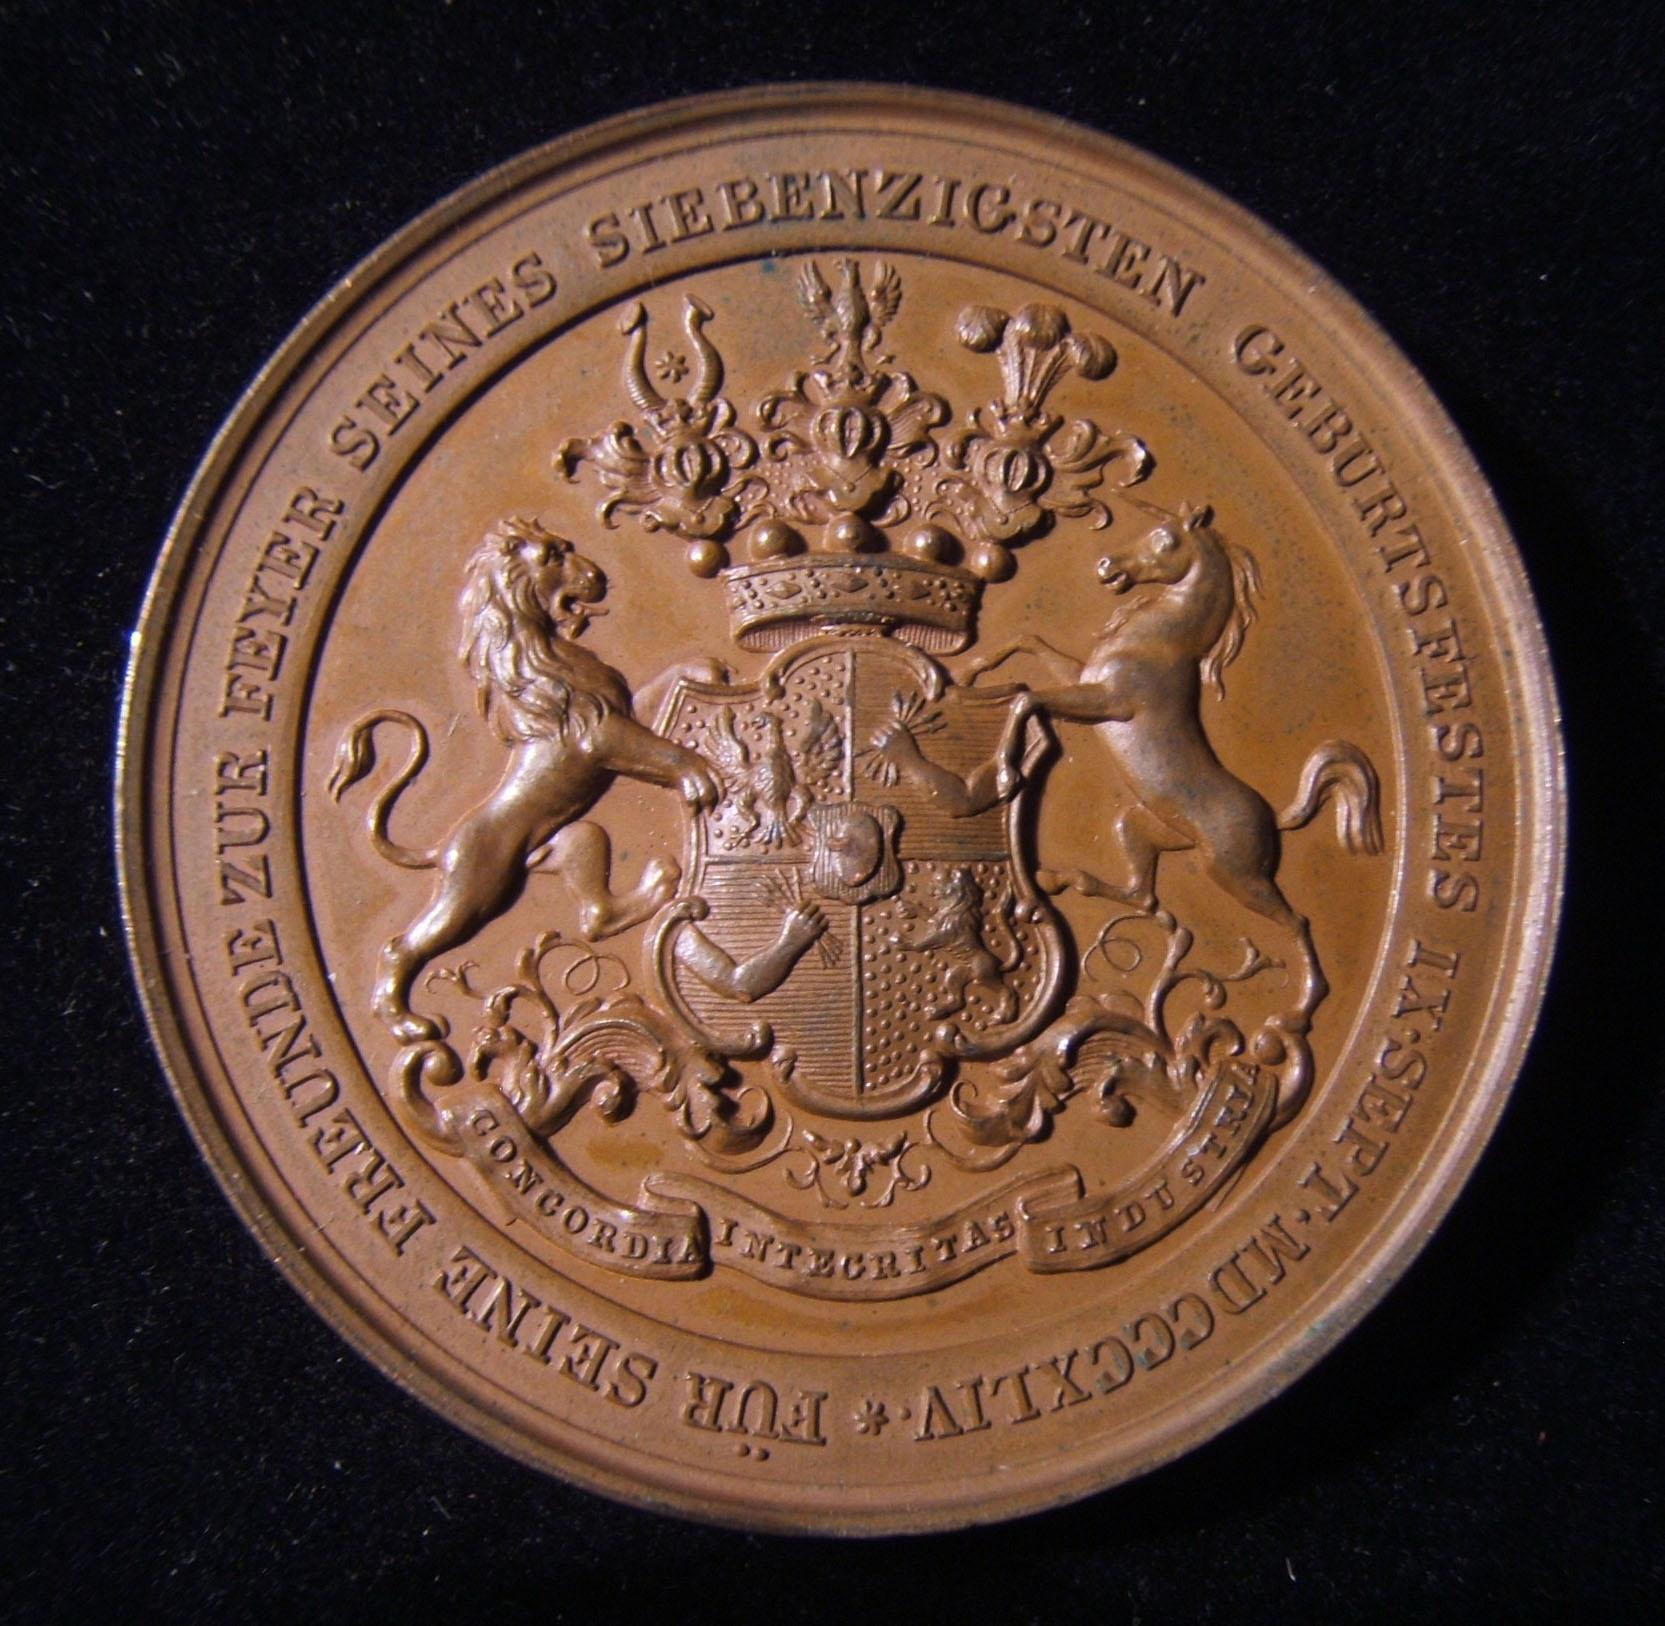 Austria-Hungary > Vienna: Salomon Mayer Rothschild 70th birthday bronze medal, 1844; by Konrad Lange; 64.6g, 49mm. Obv.: family's coat of arms; leg.